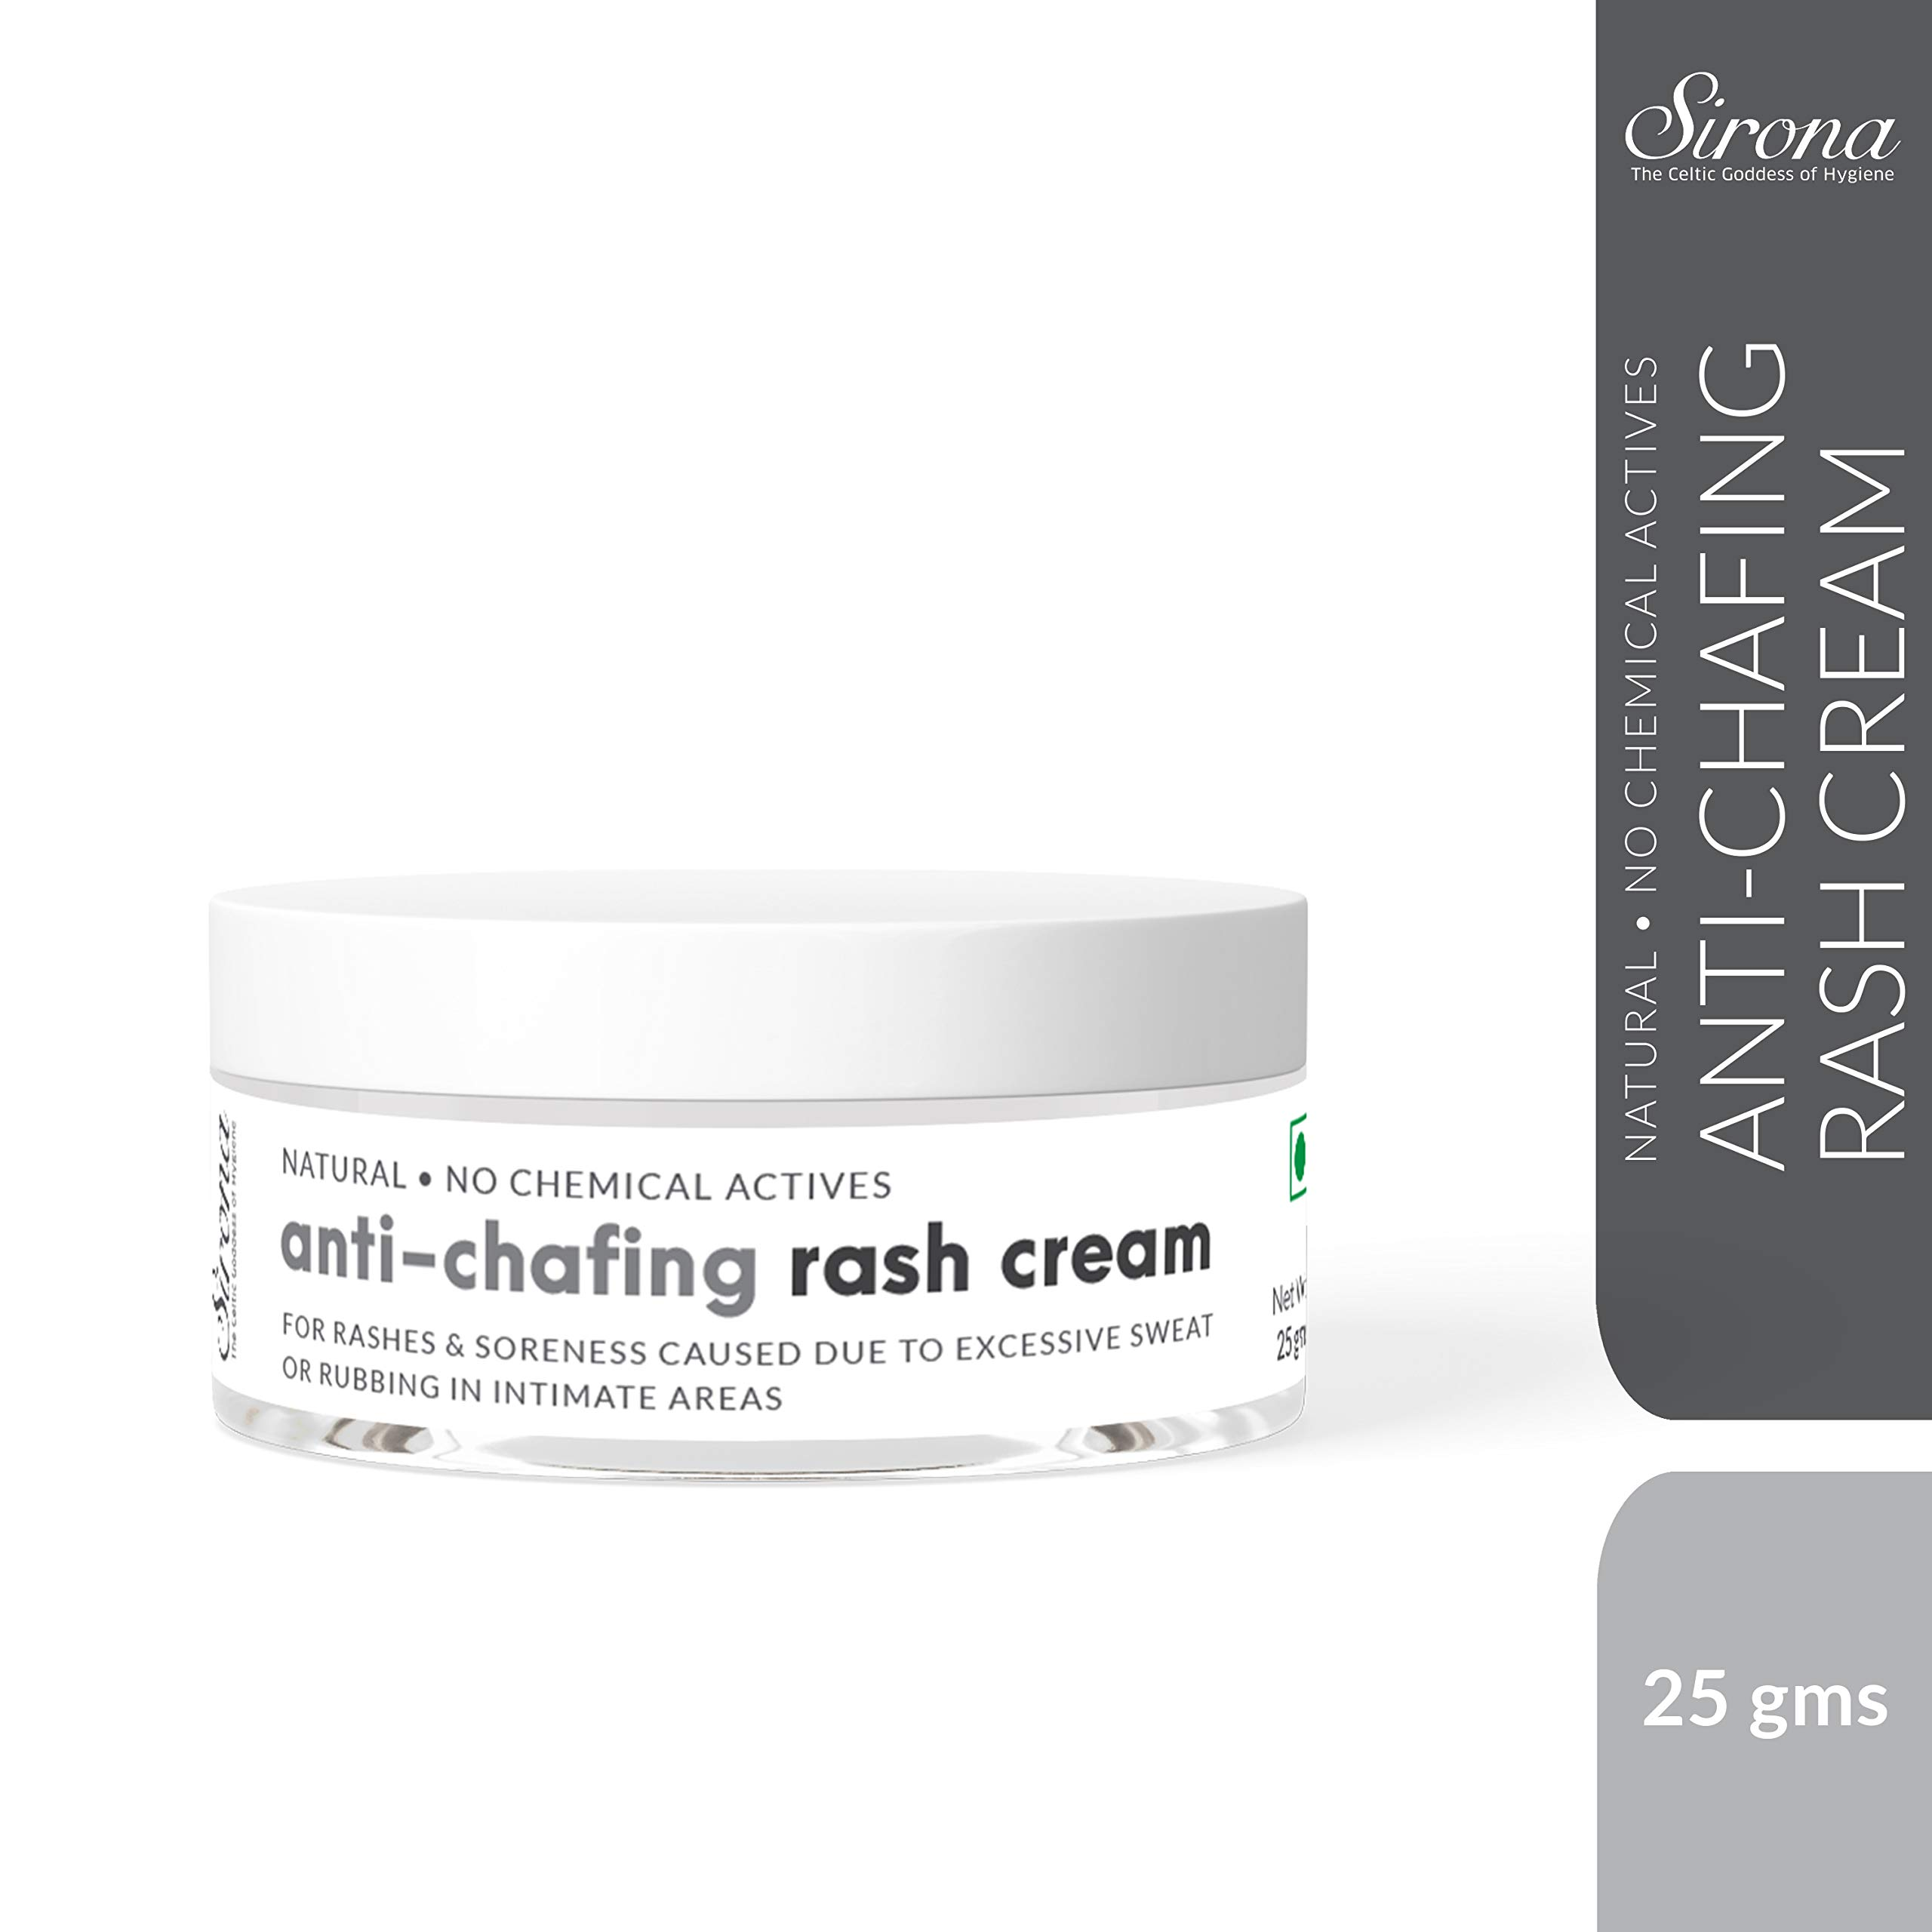 Sirona Natural Anti Chafing Rash Cream - 1 Ounce, Skin Healing Cream with 5 Magical Herbs| Helps in Soothing and Preventing Rashes Due to Sanitary Pads, Heavy Thighs, Sports Activities and Running